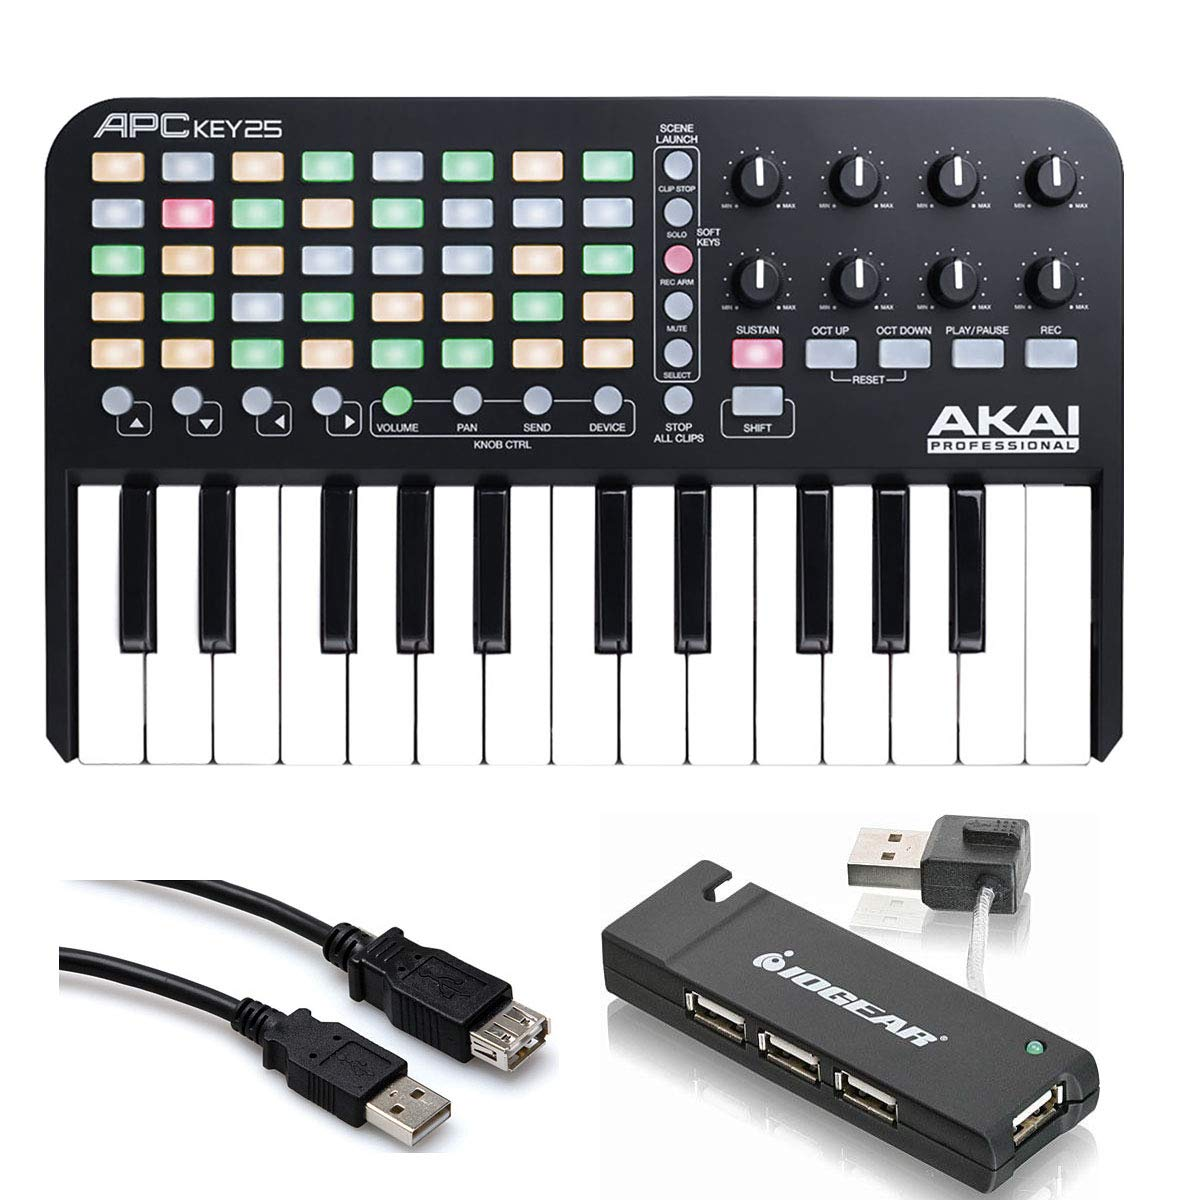 Akai Professional APC Key 25 - Ableton Live Controller with Keyboard + 4-Port USB 2.0 Hub + Hosa USB- Type High Speed USB Extension Cable by Akai